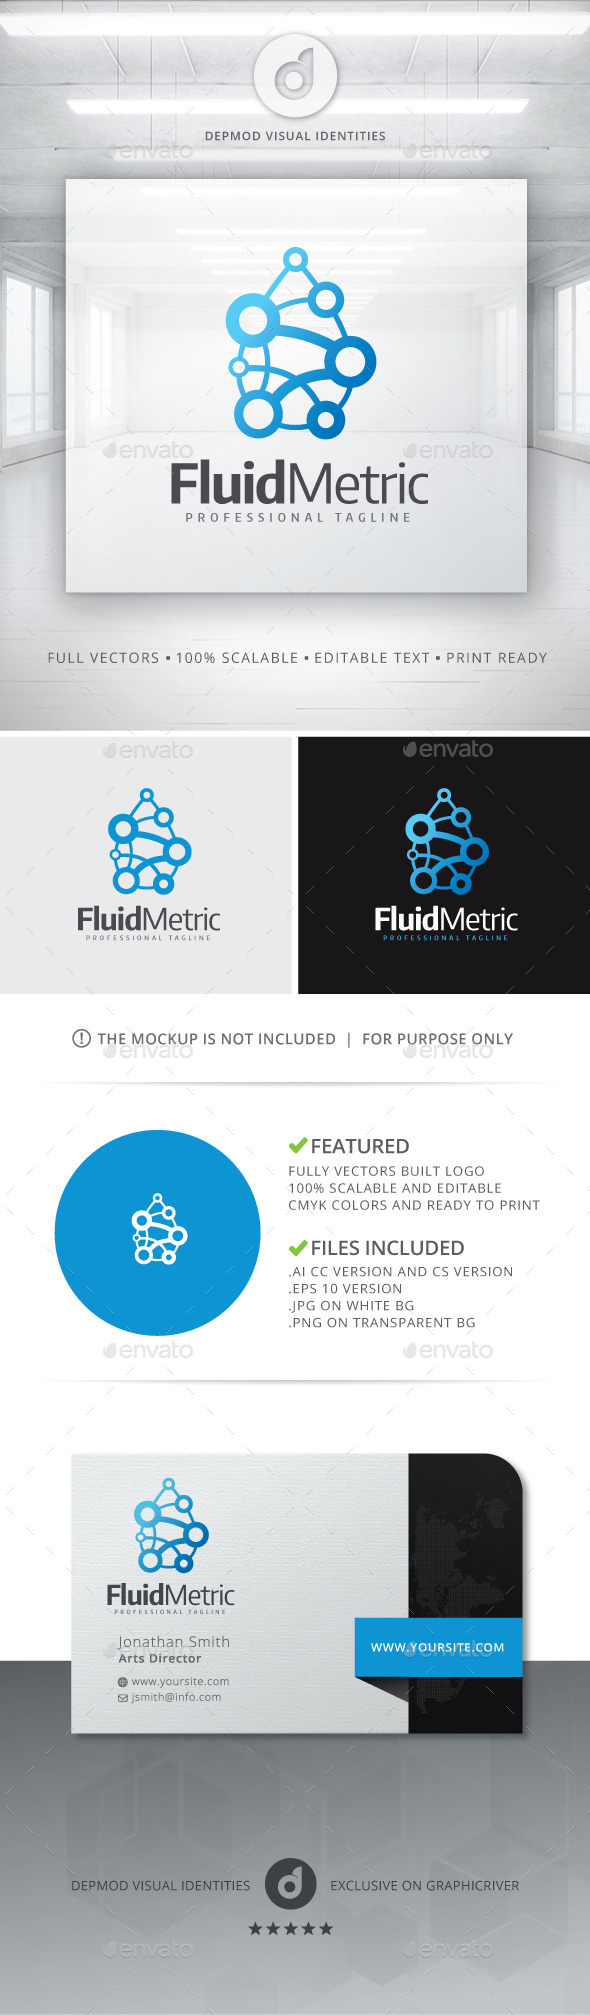 GraphicRiver Fluid Metric Logo 11128803